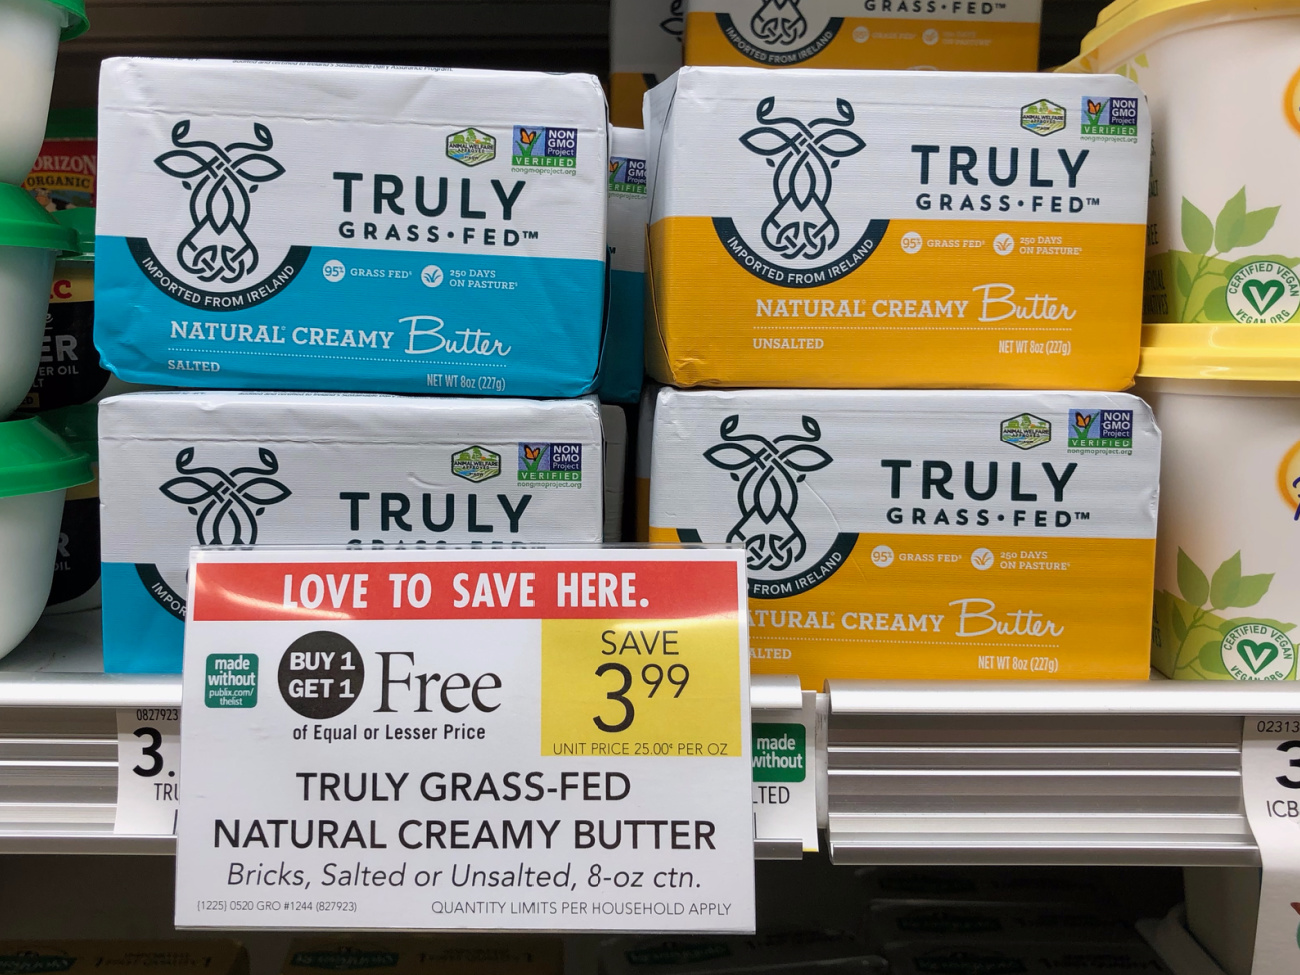 Truly Grass-Fed Natural Creamy Butter Just $1 After Coupon At Publix on I Heart Publix